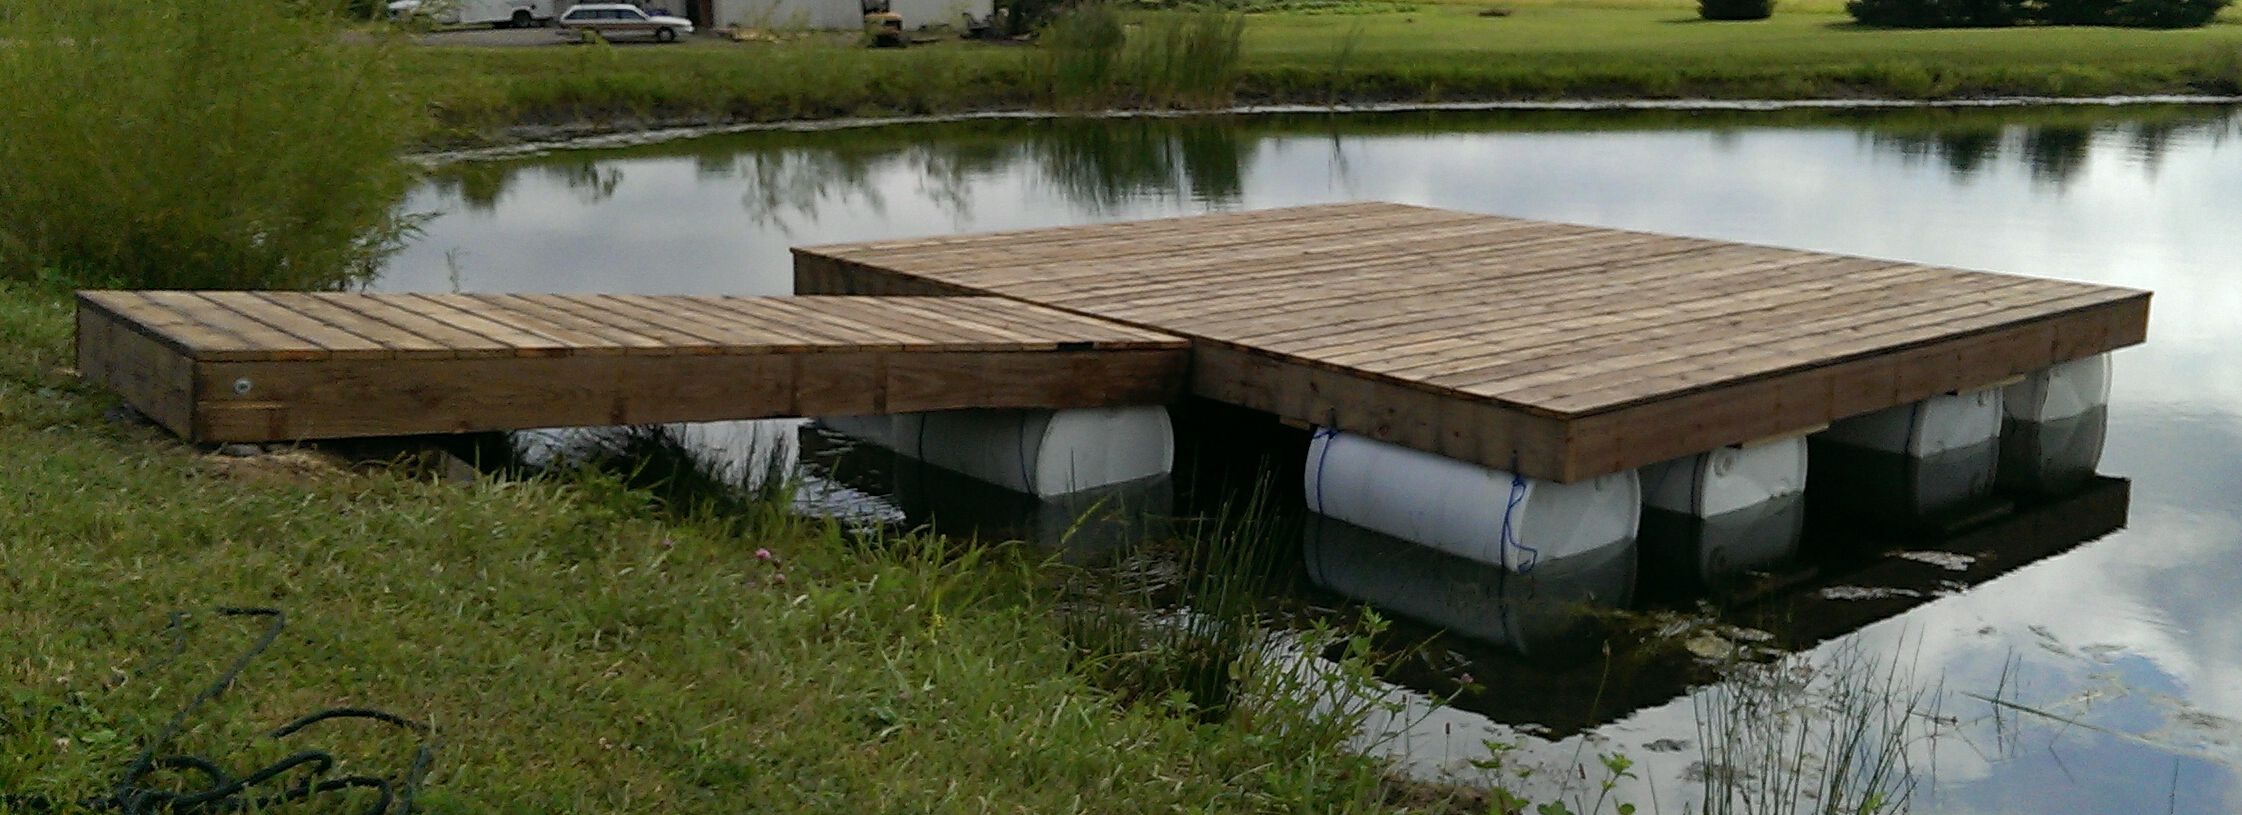 Dock Furniture Ideas 40 00 Floating Dock Completed Questions And Observations